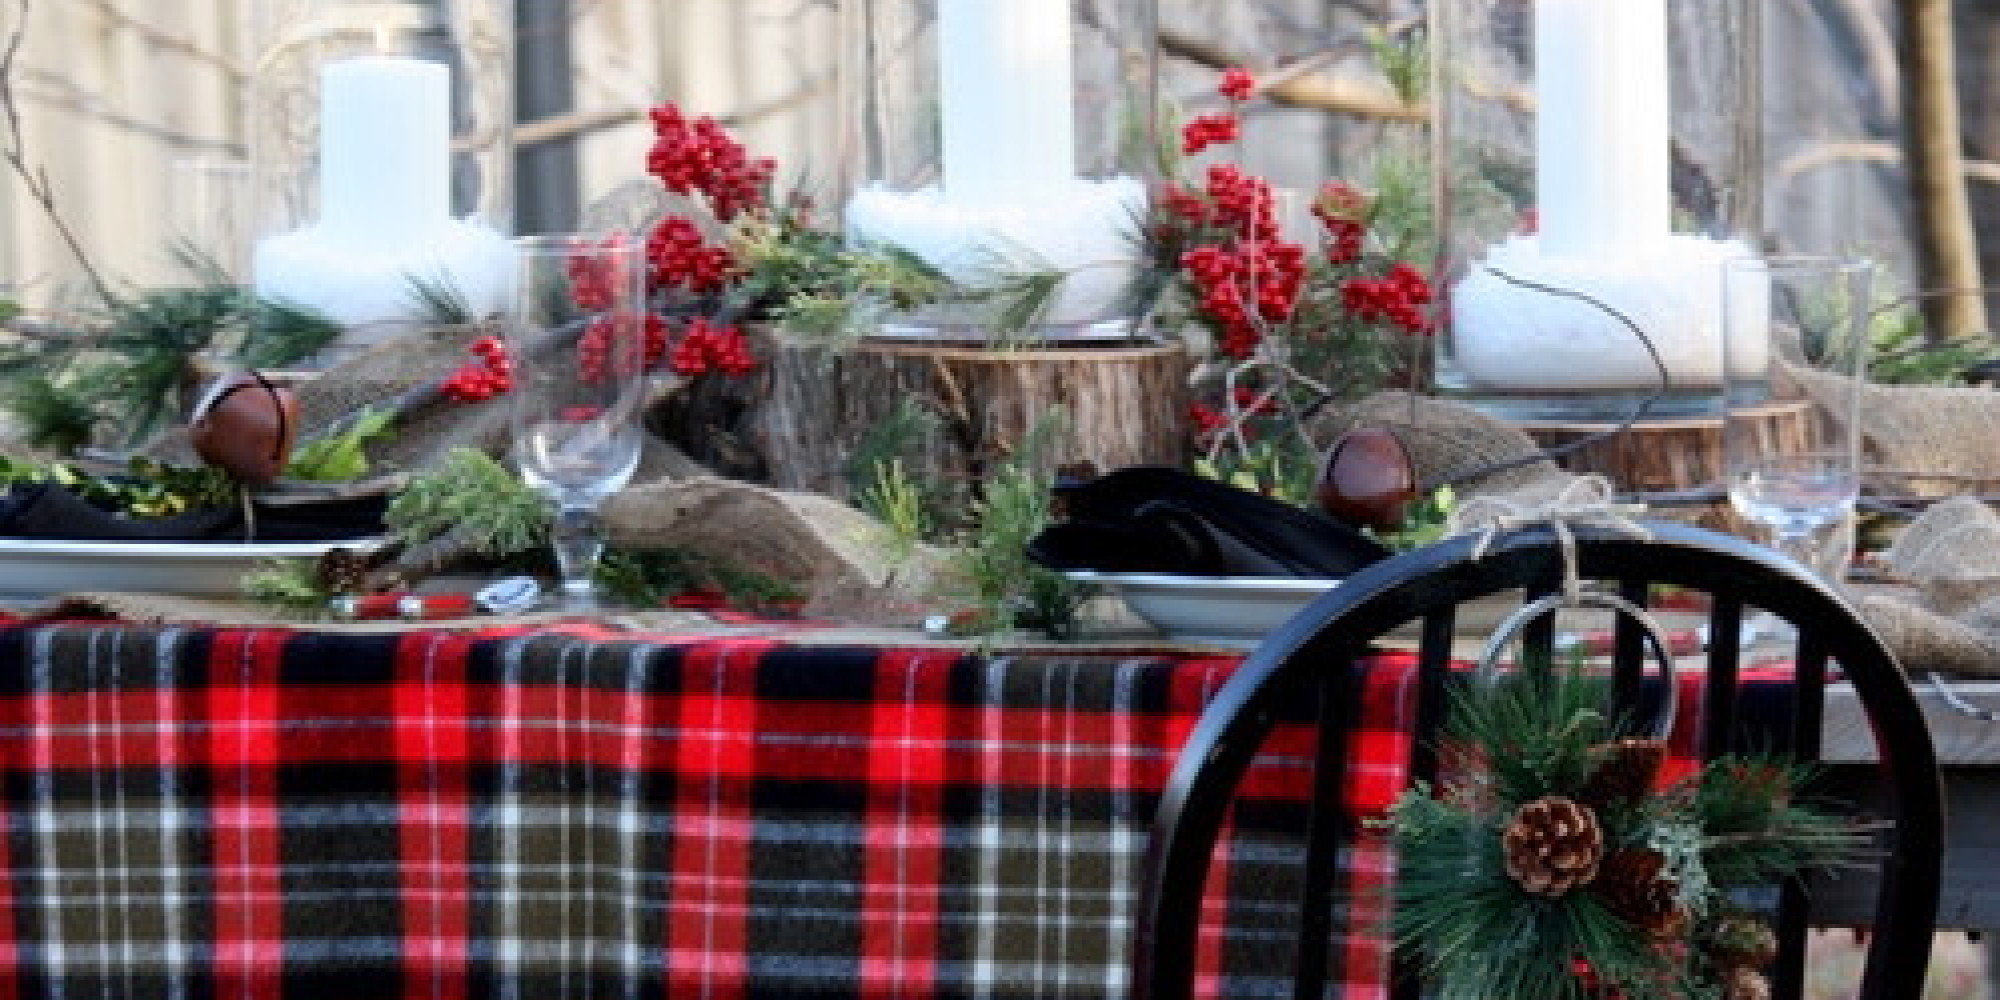 5 Christmas Decorations That Are OK To Keep Up Long